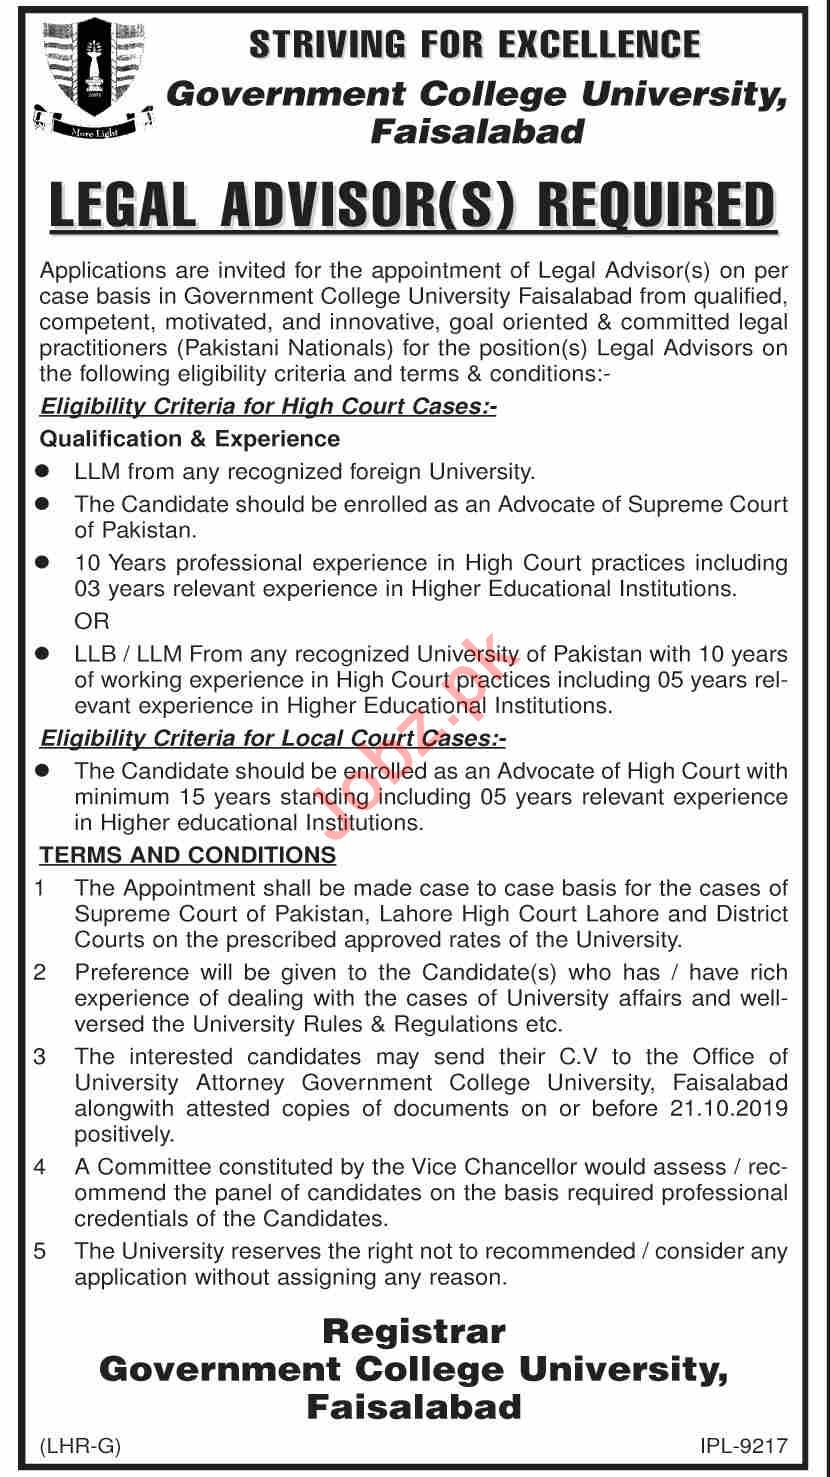 Govt College University Faisalabad GCUF Jobs Legal Advisor